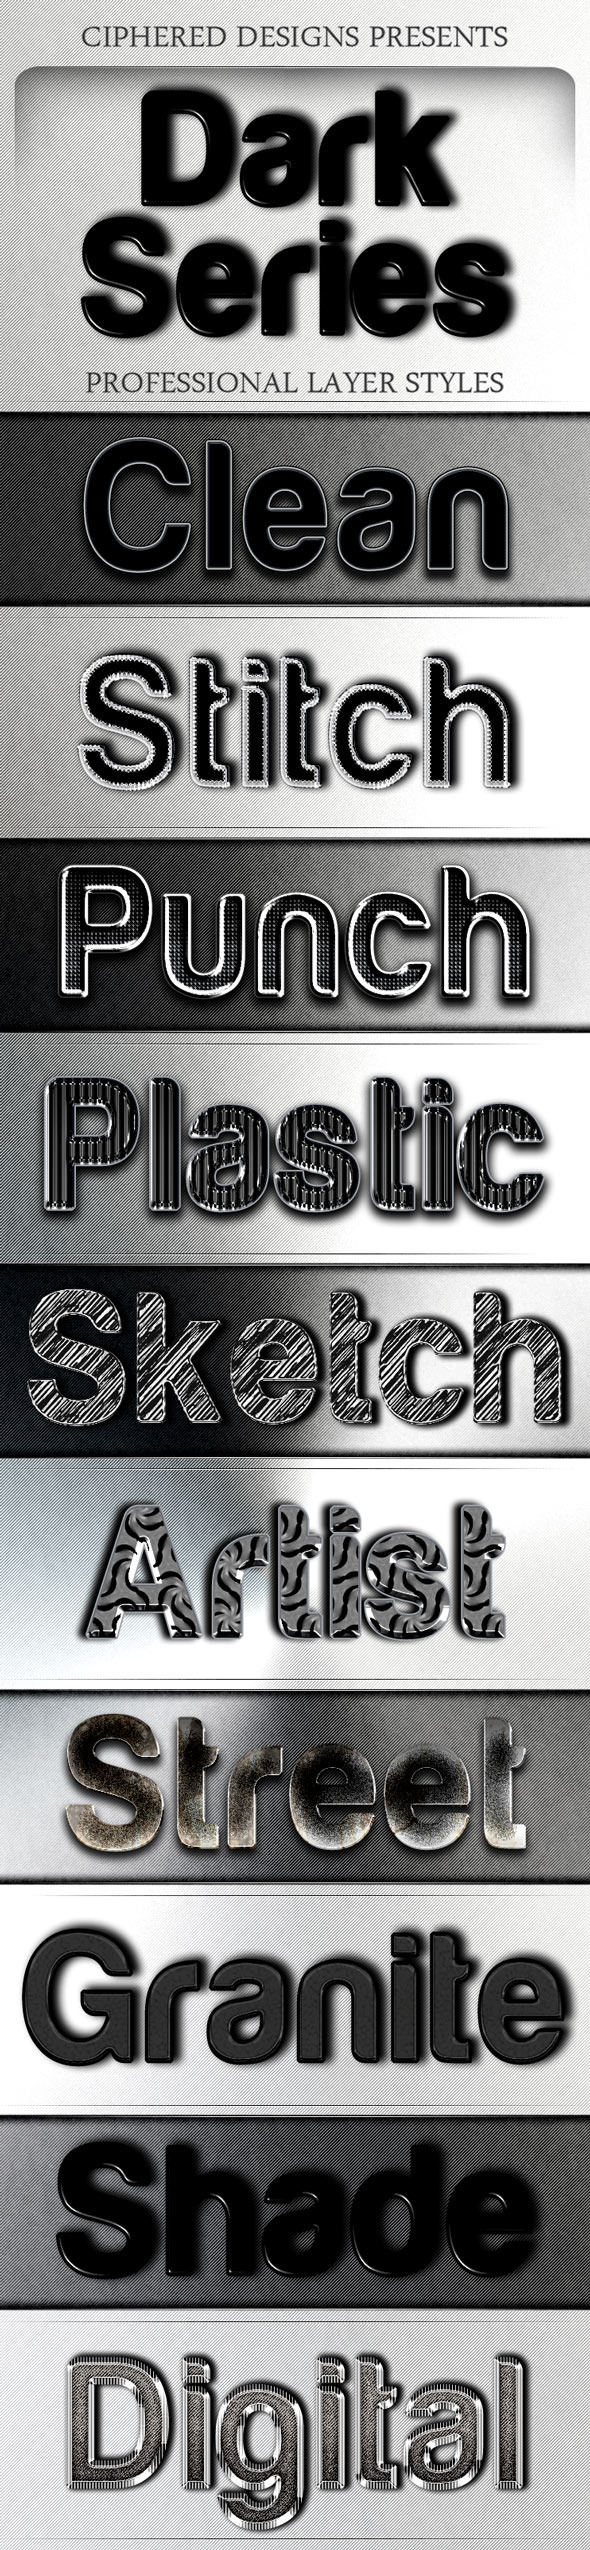 Dark Series - Professional Layer Styles - Text Effects Styles